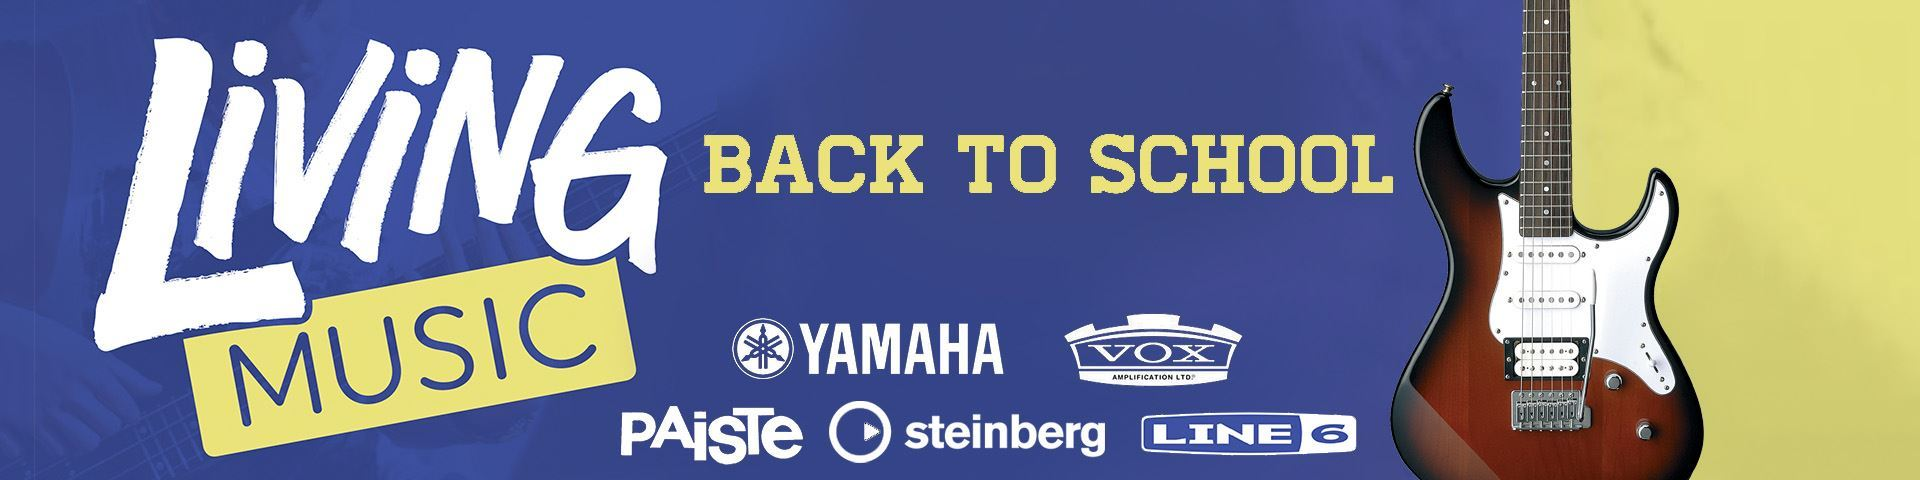 Yamaha Back to School Musical Instruments